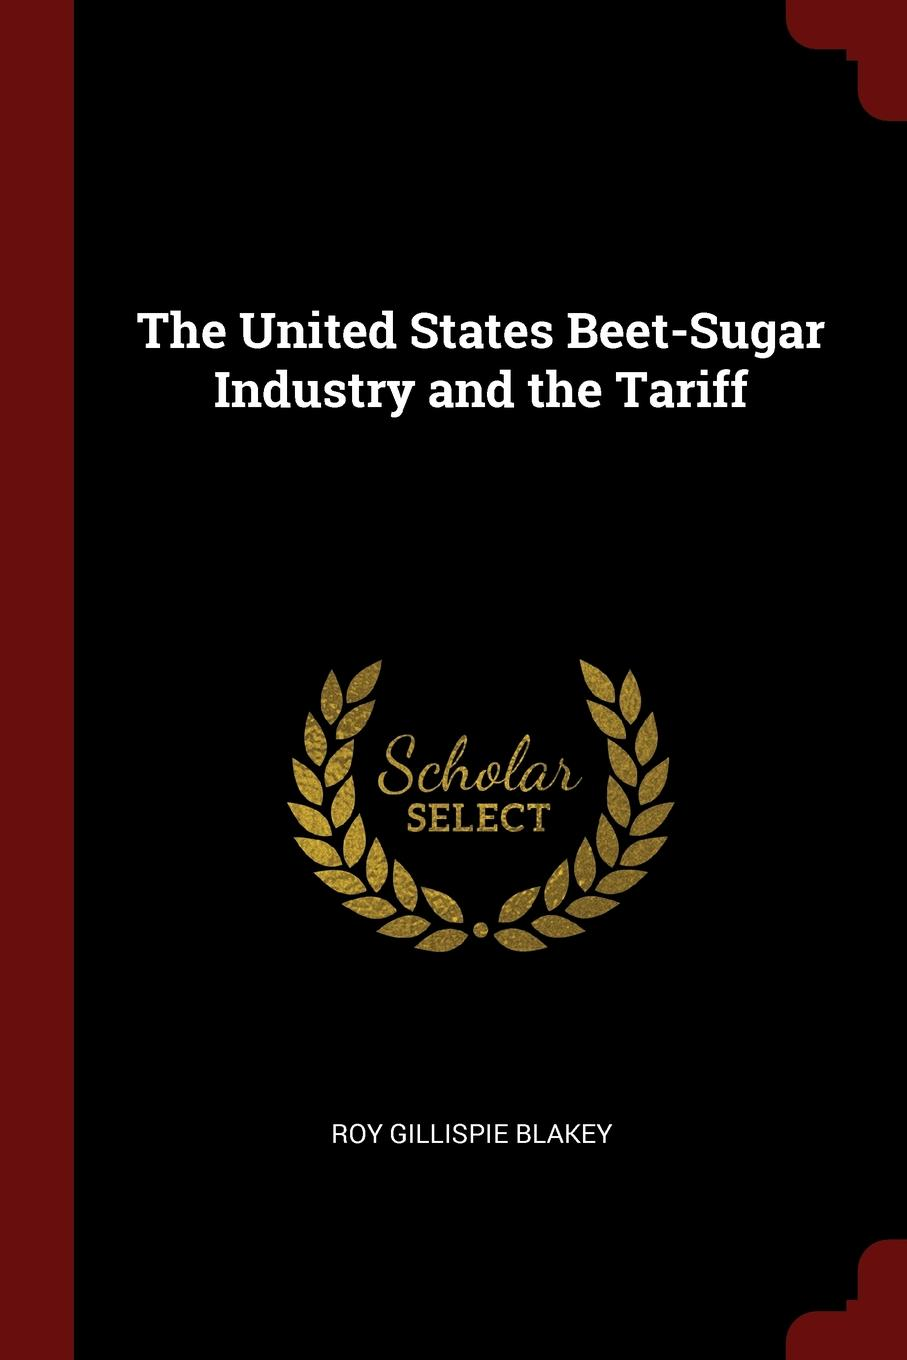 Roy Gillispie Blakey The United States Beet-Sugar Industry and the Tariff